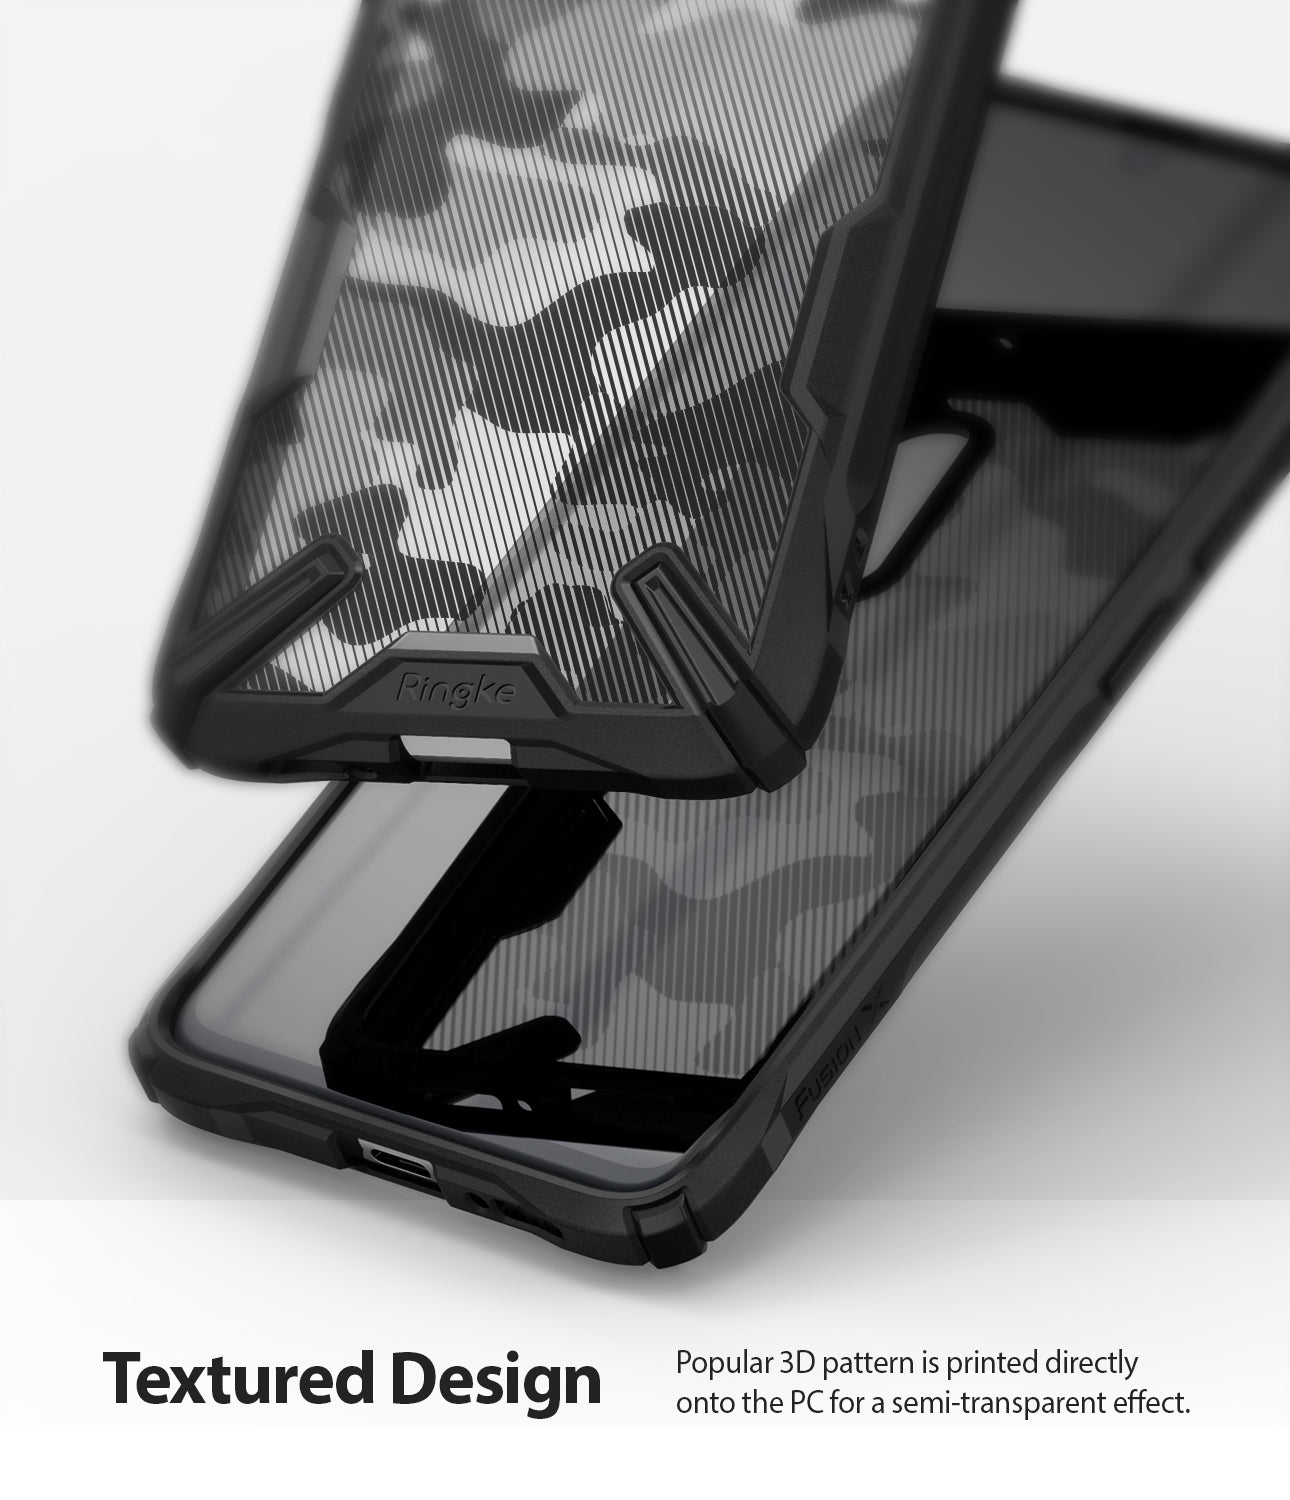 popular 3d camo pattern printed directly onto the pc for a semi transparent effect